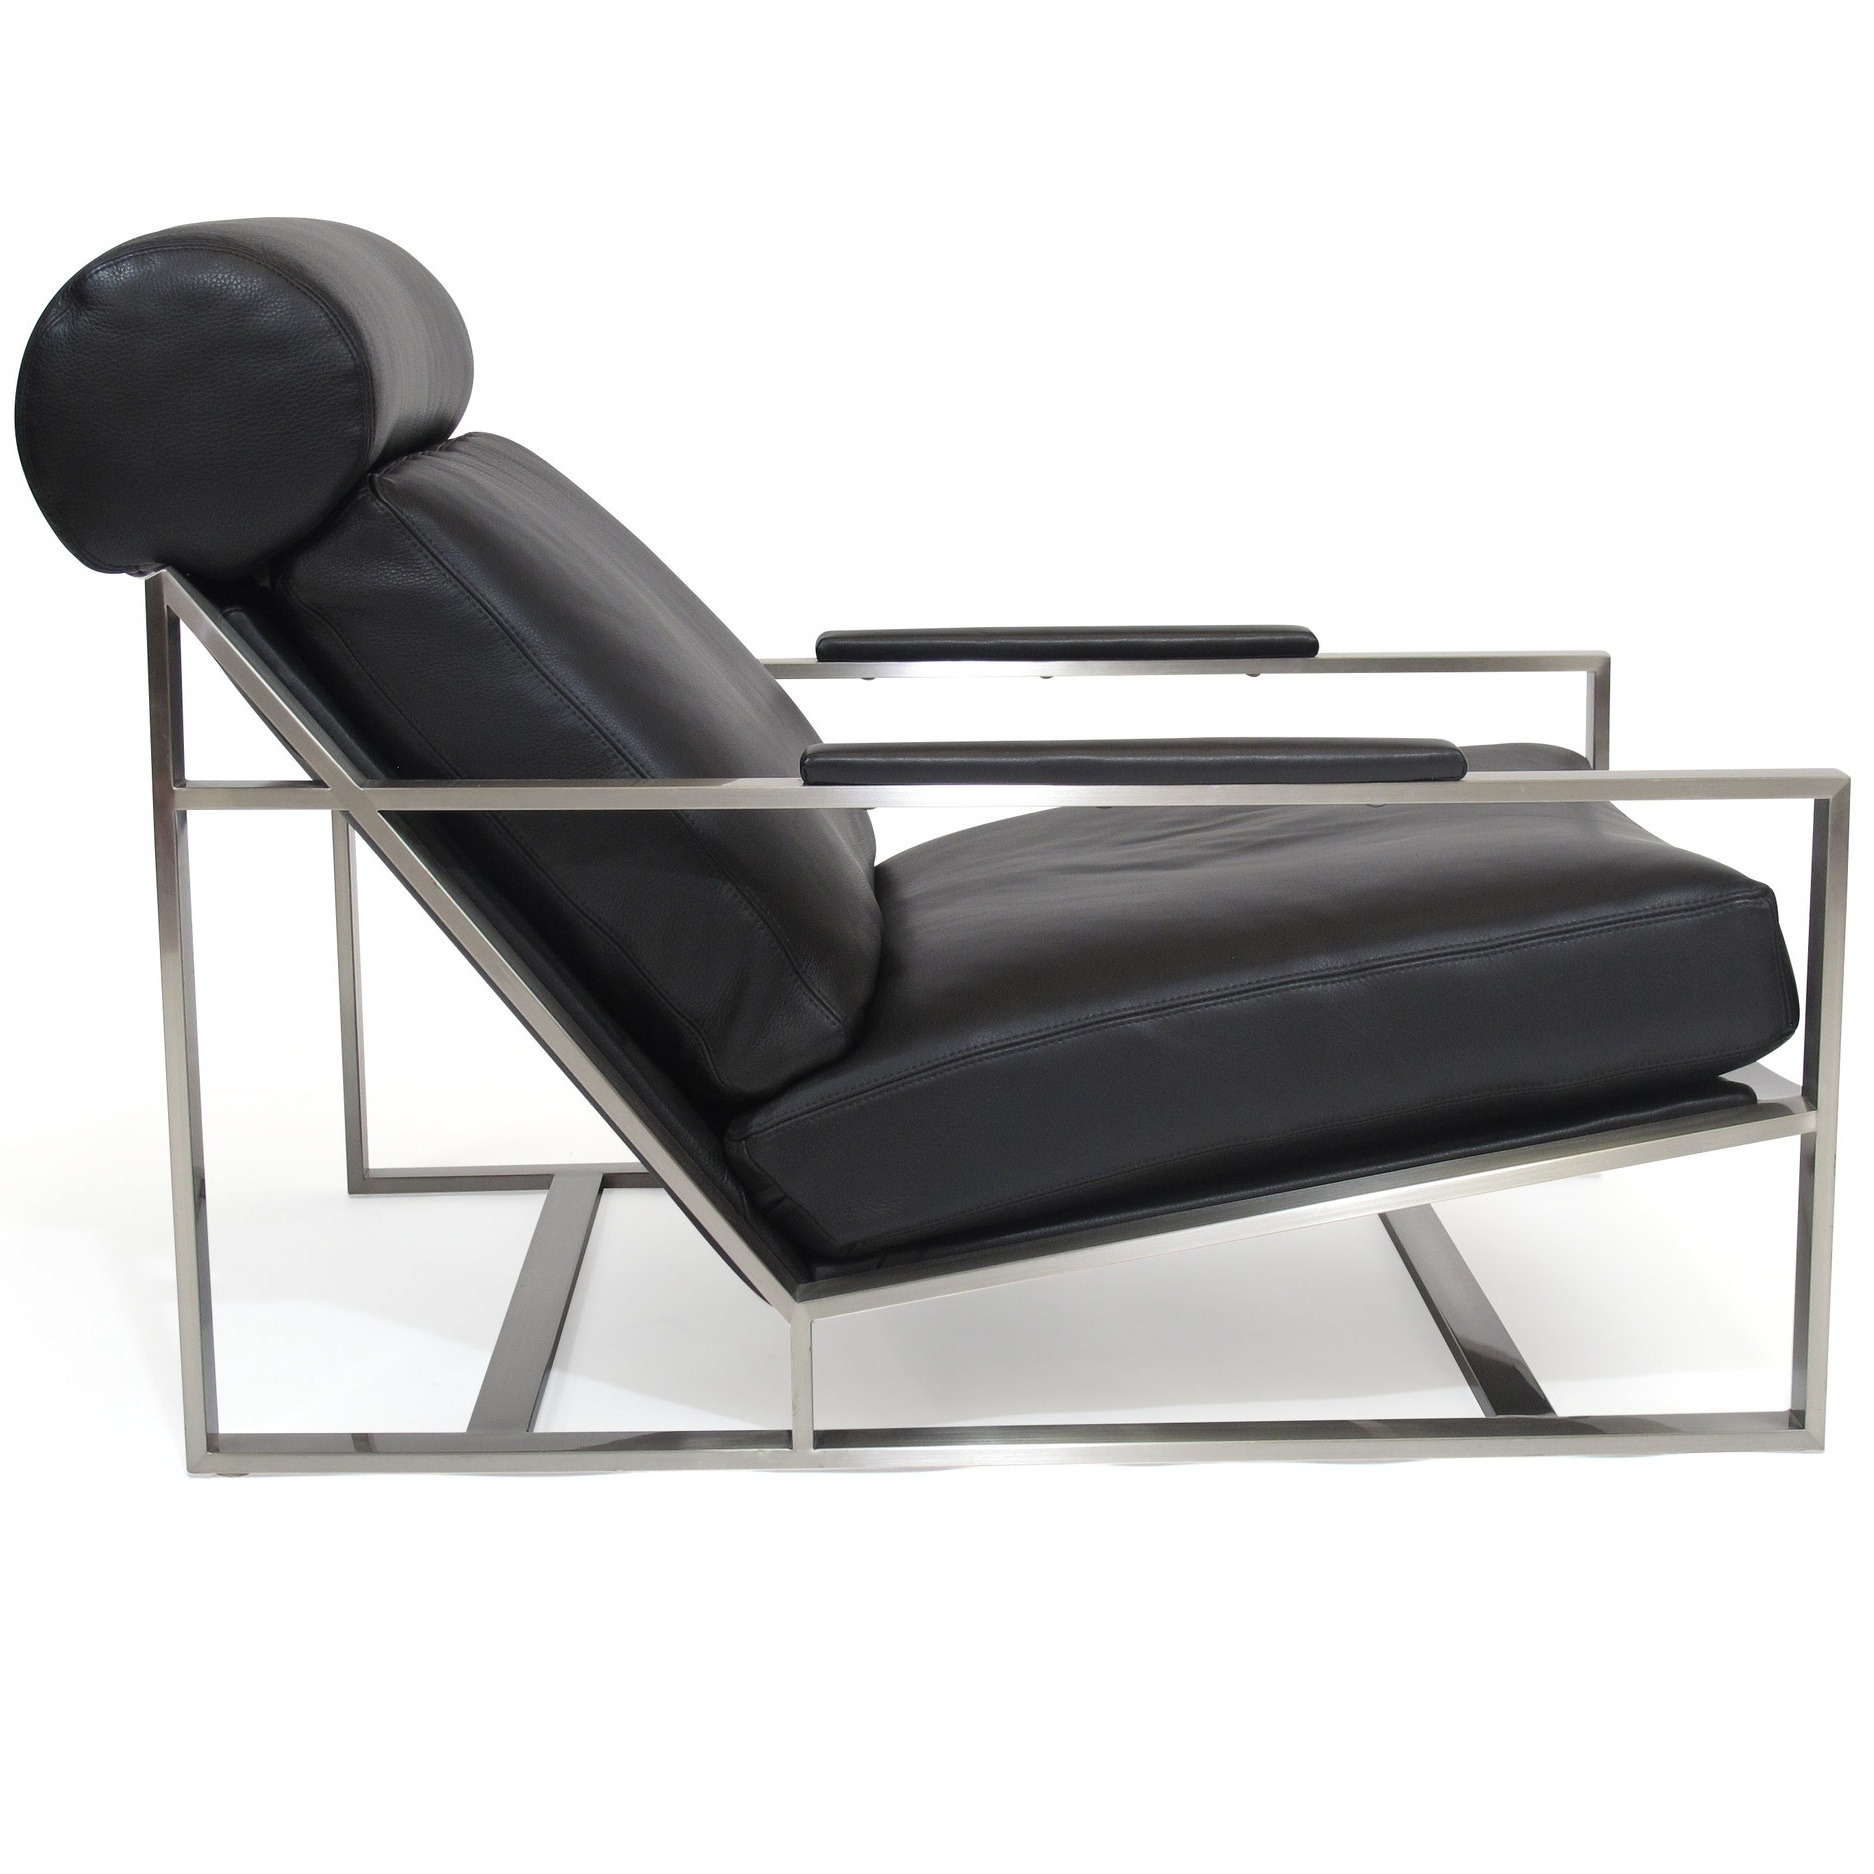 Floor Lounge Chair Milo Baughman Cruisin Lounge Chair